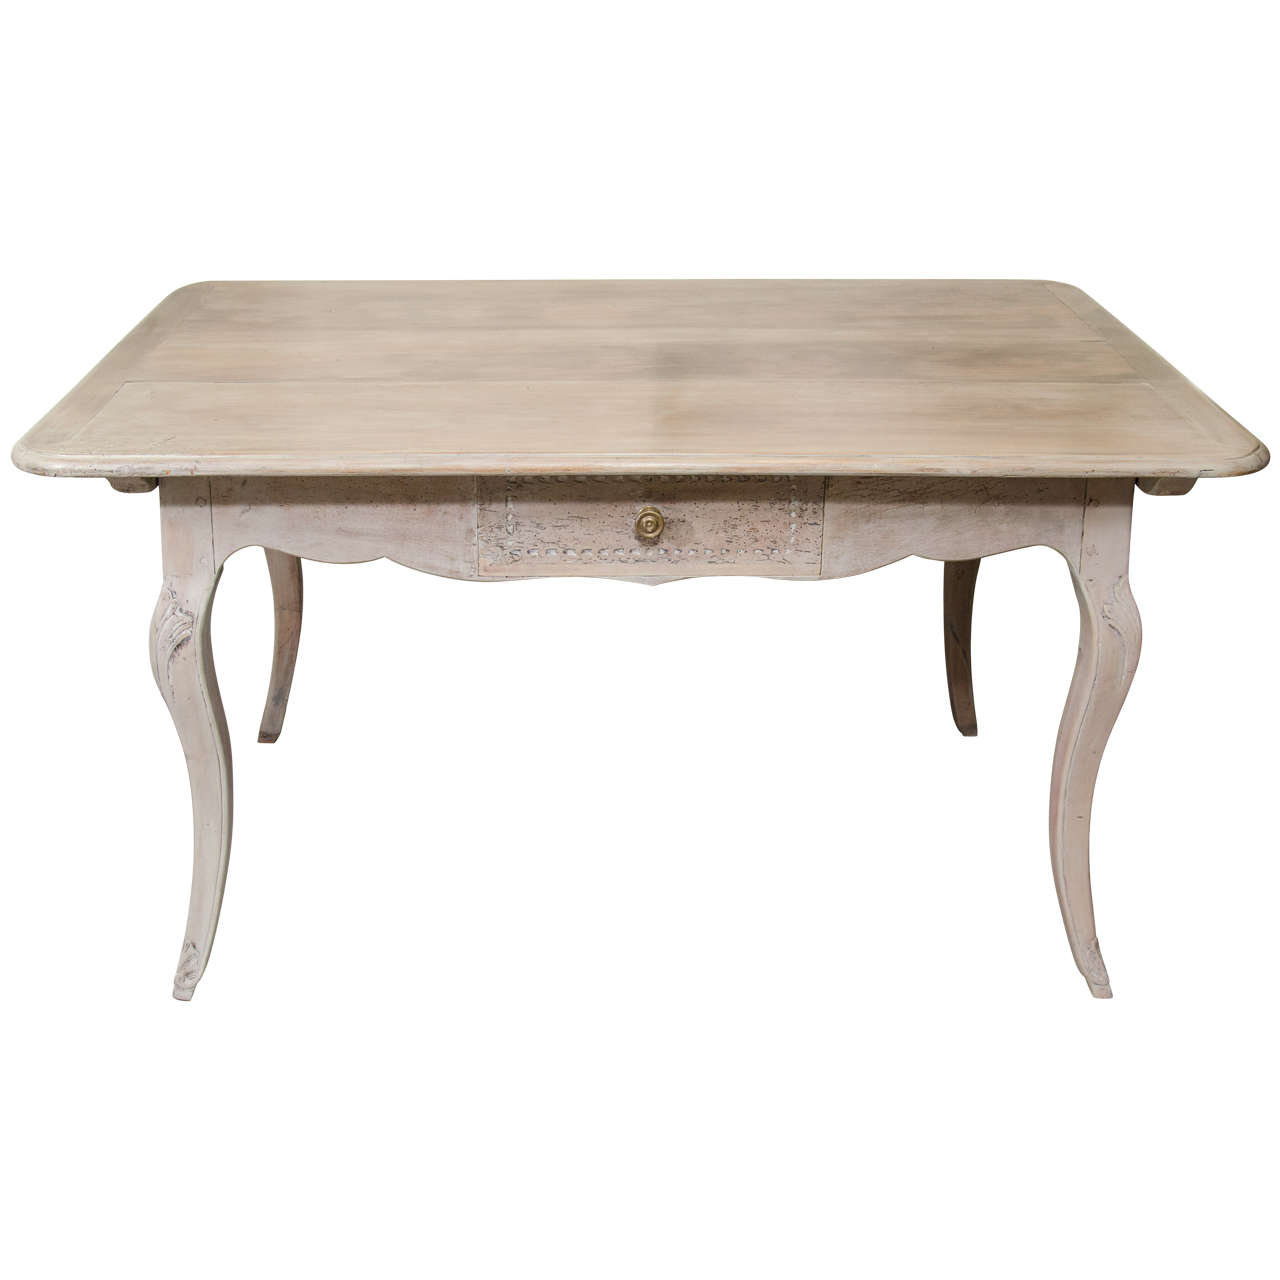 this small french dining table is no longer available